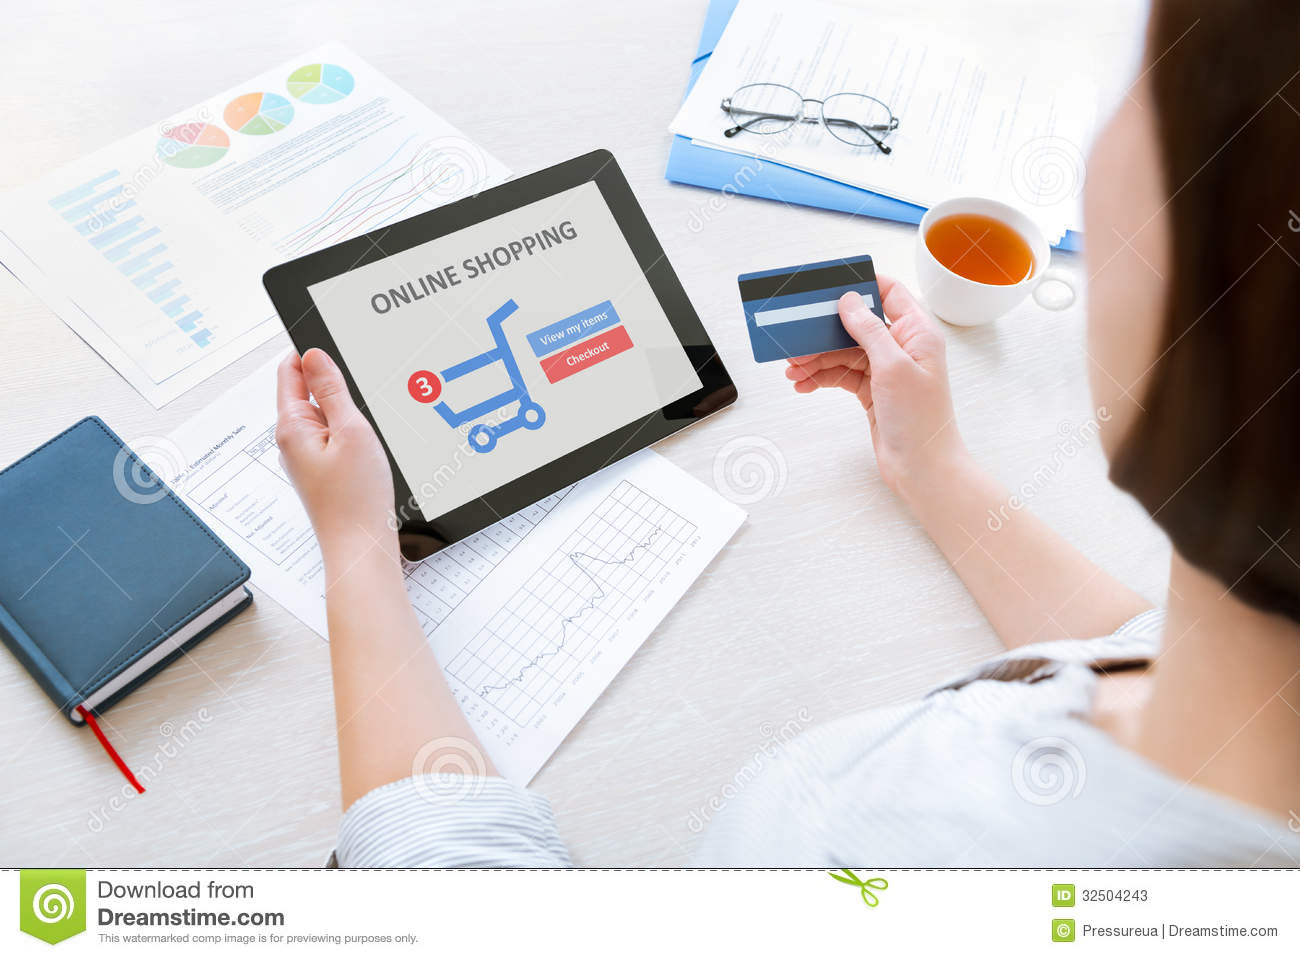 Online Shopping With Digital Tablet Stock Image - Image of